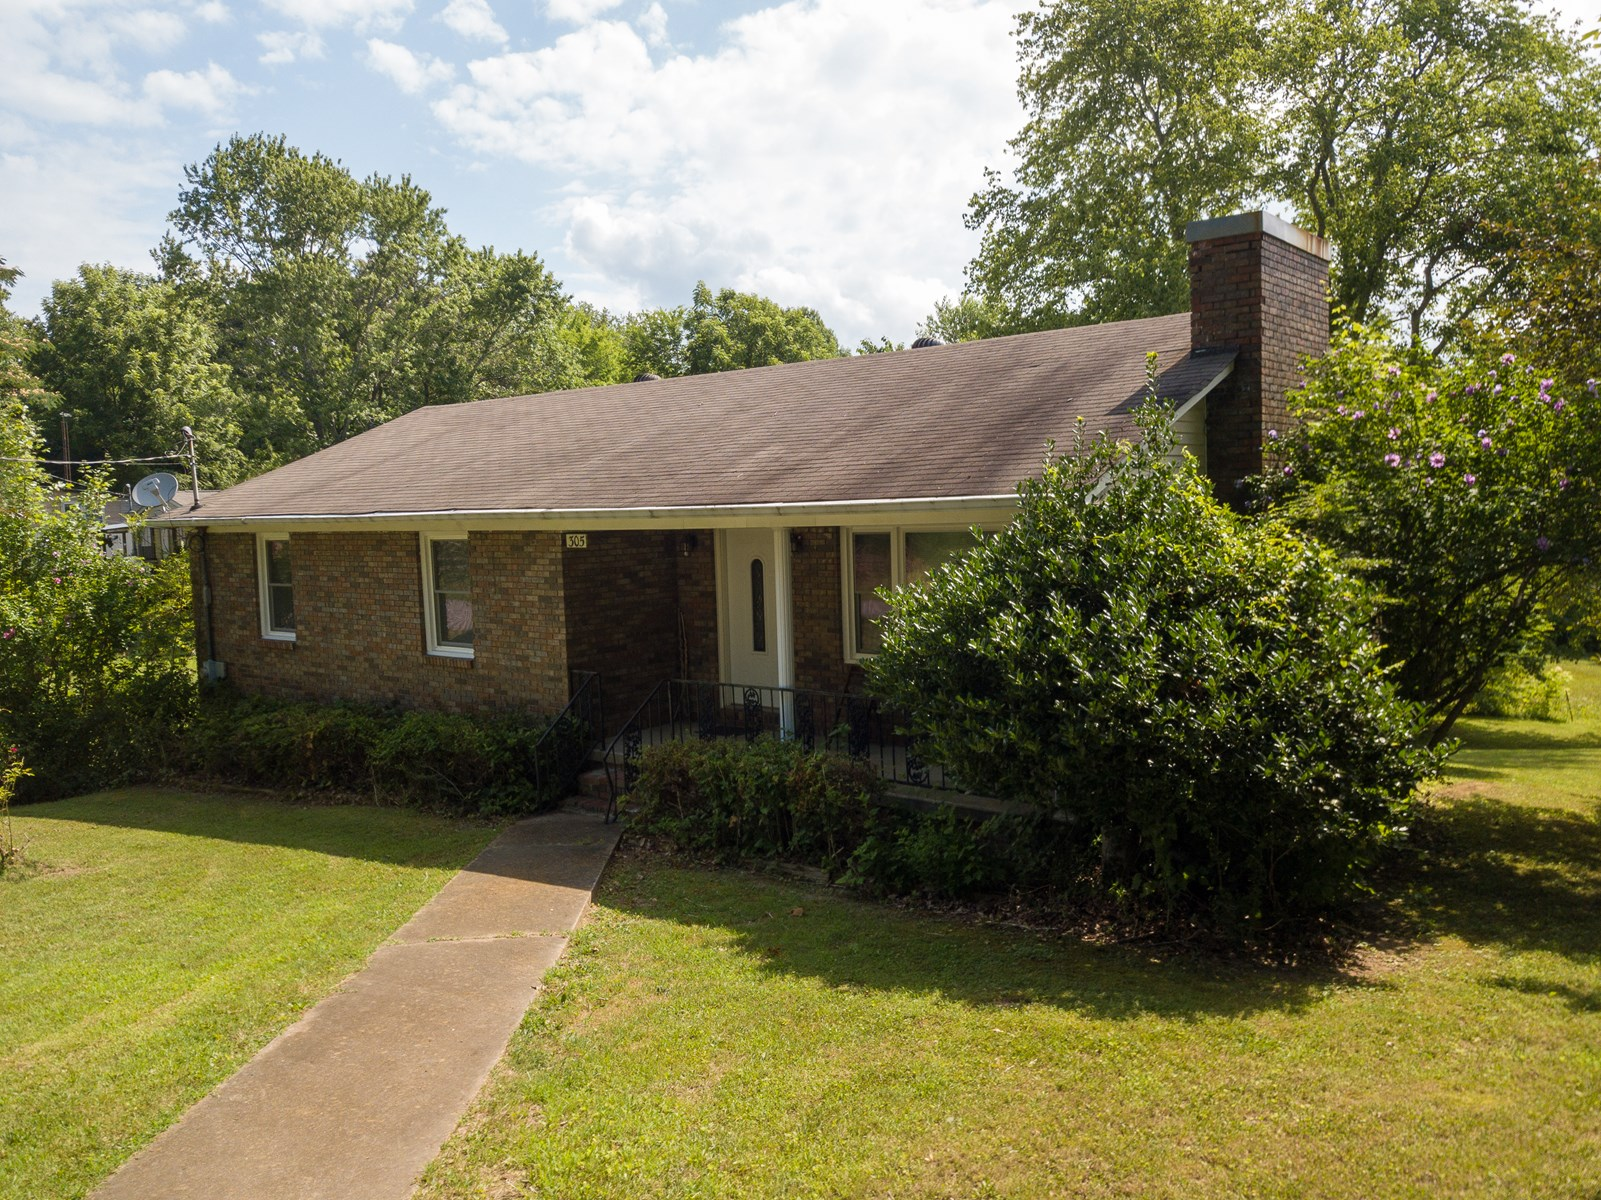 SALE PENDING 2 STORY 3 BED 2.5 BATH HOME COLLINWOOD TN .3 AC